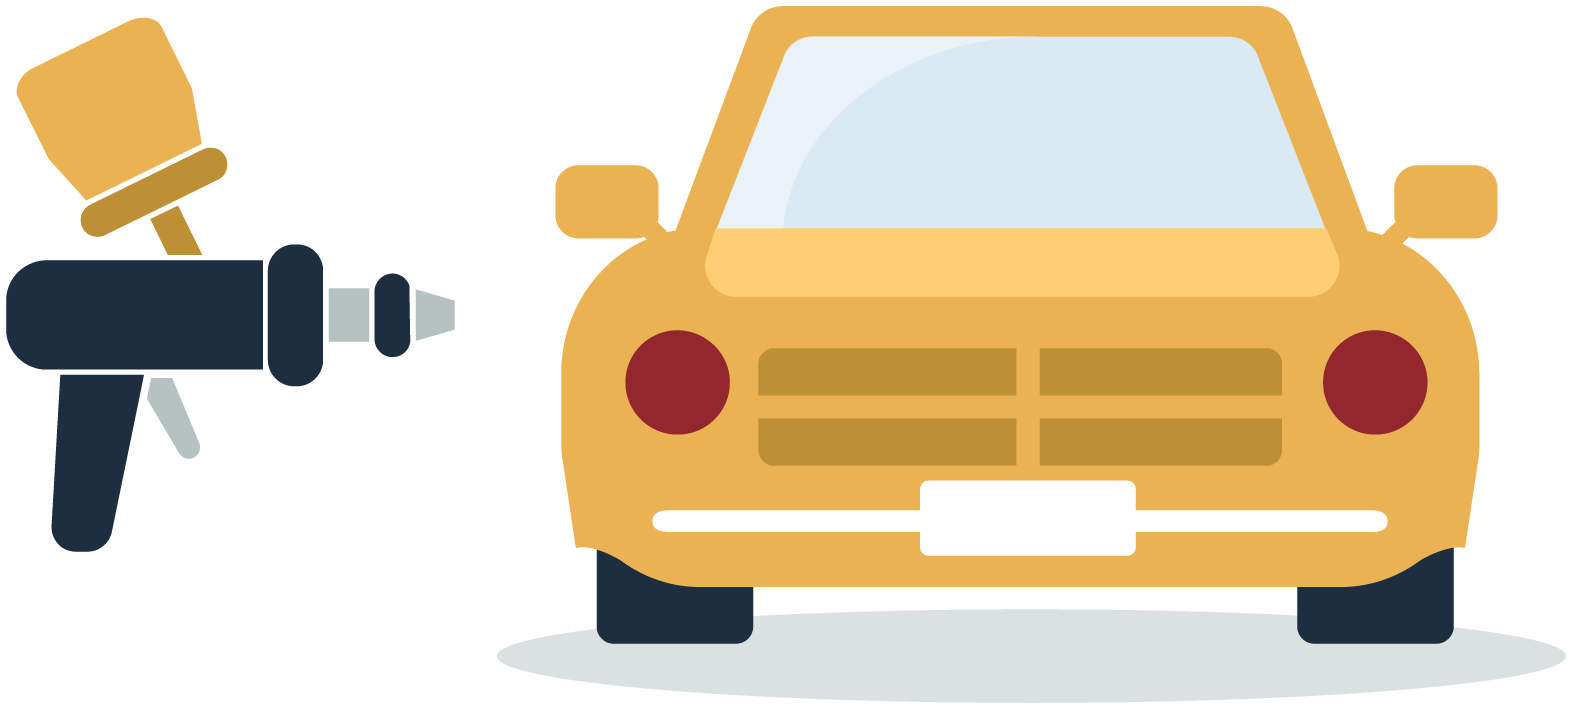 Illustration of paint tool in front of yellow car